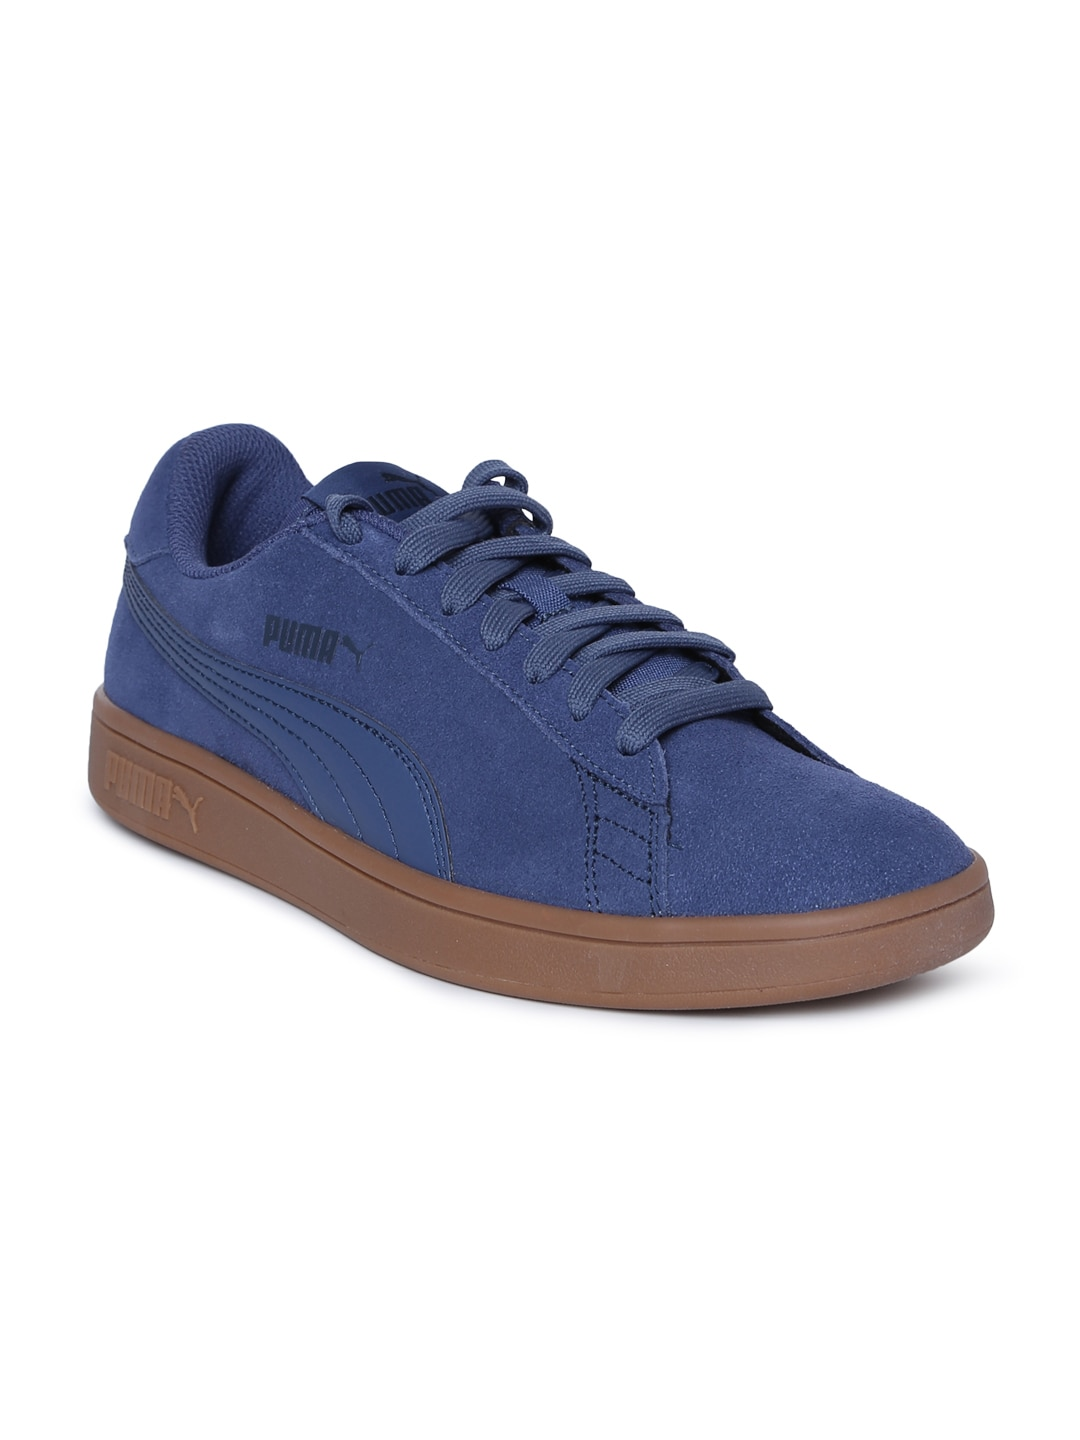 db89272b64e1 Buy Nike Men Grey COURT ROYALE SUEDE Sneakers - Casual Shoes for Men ...